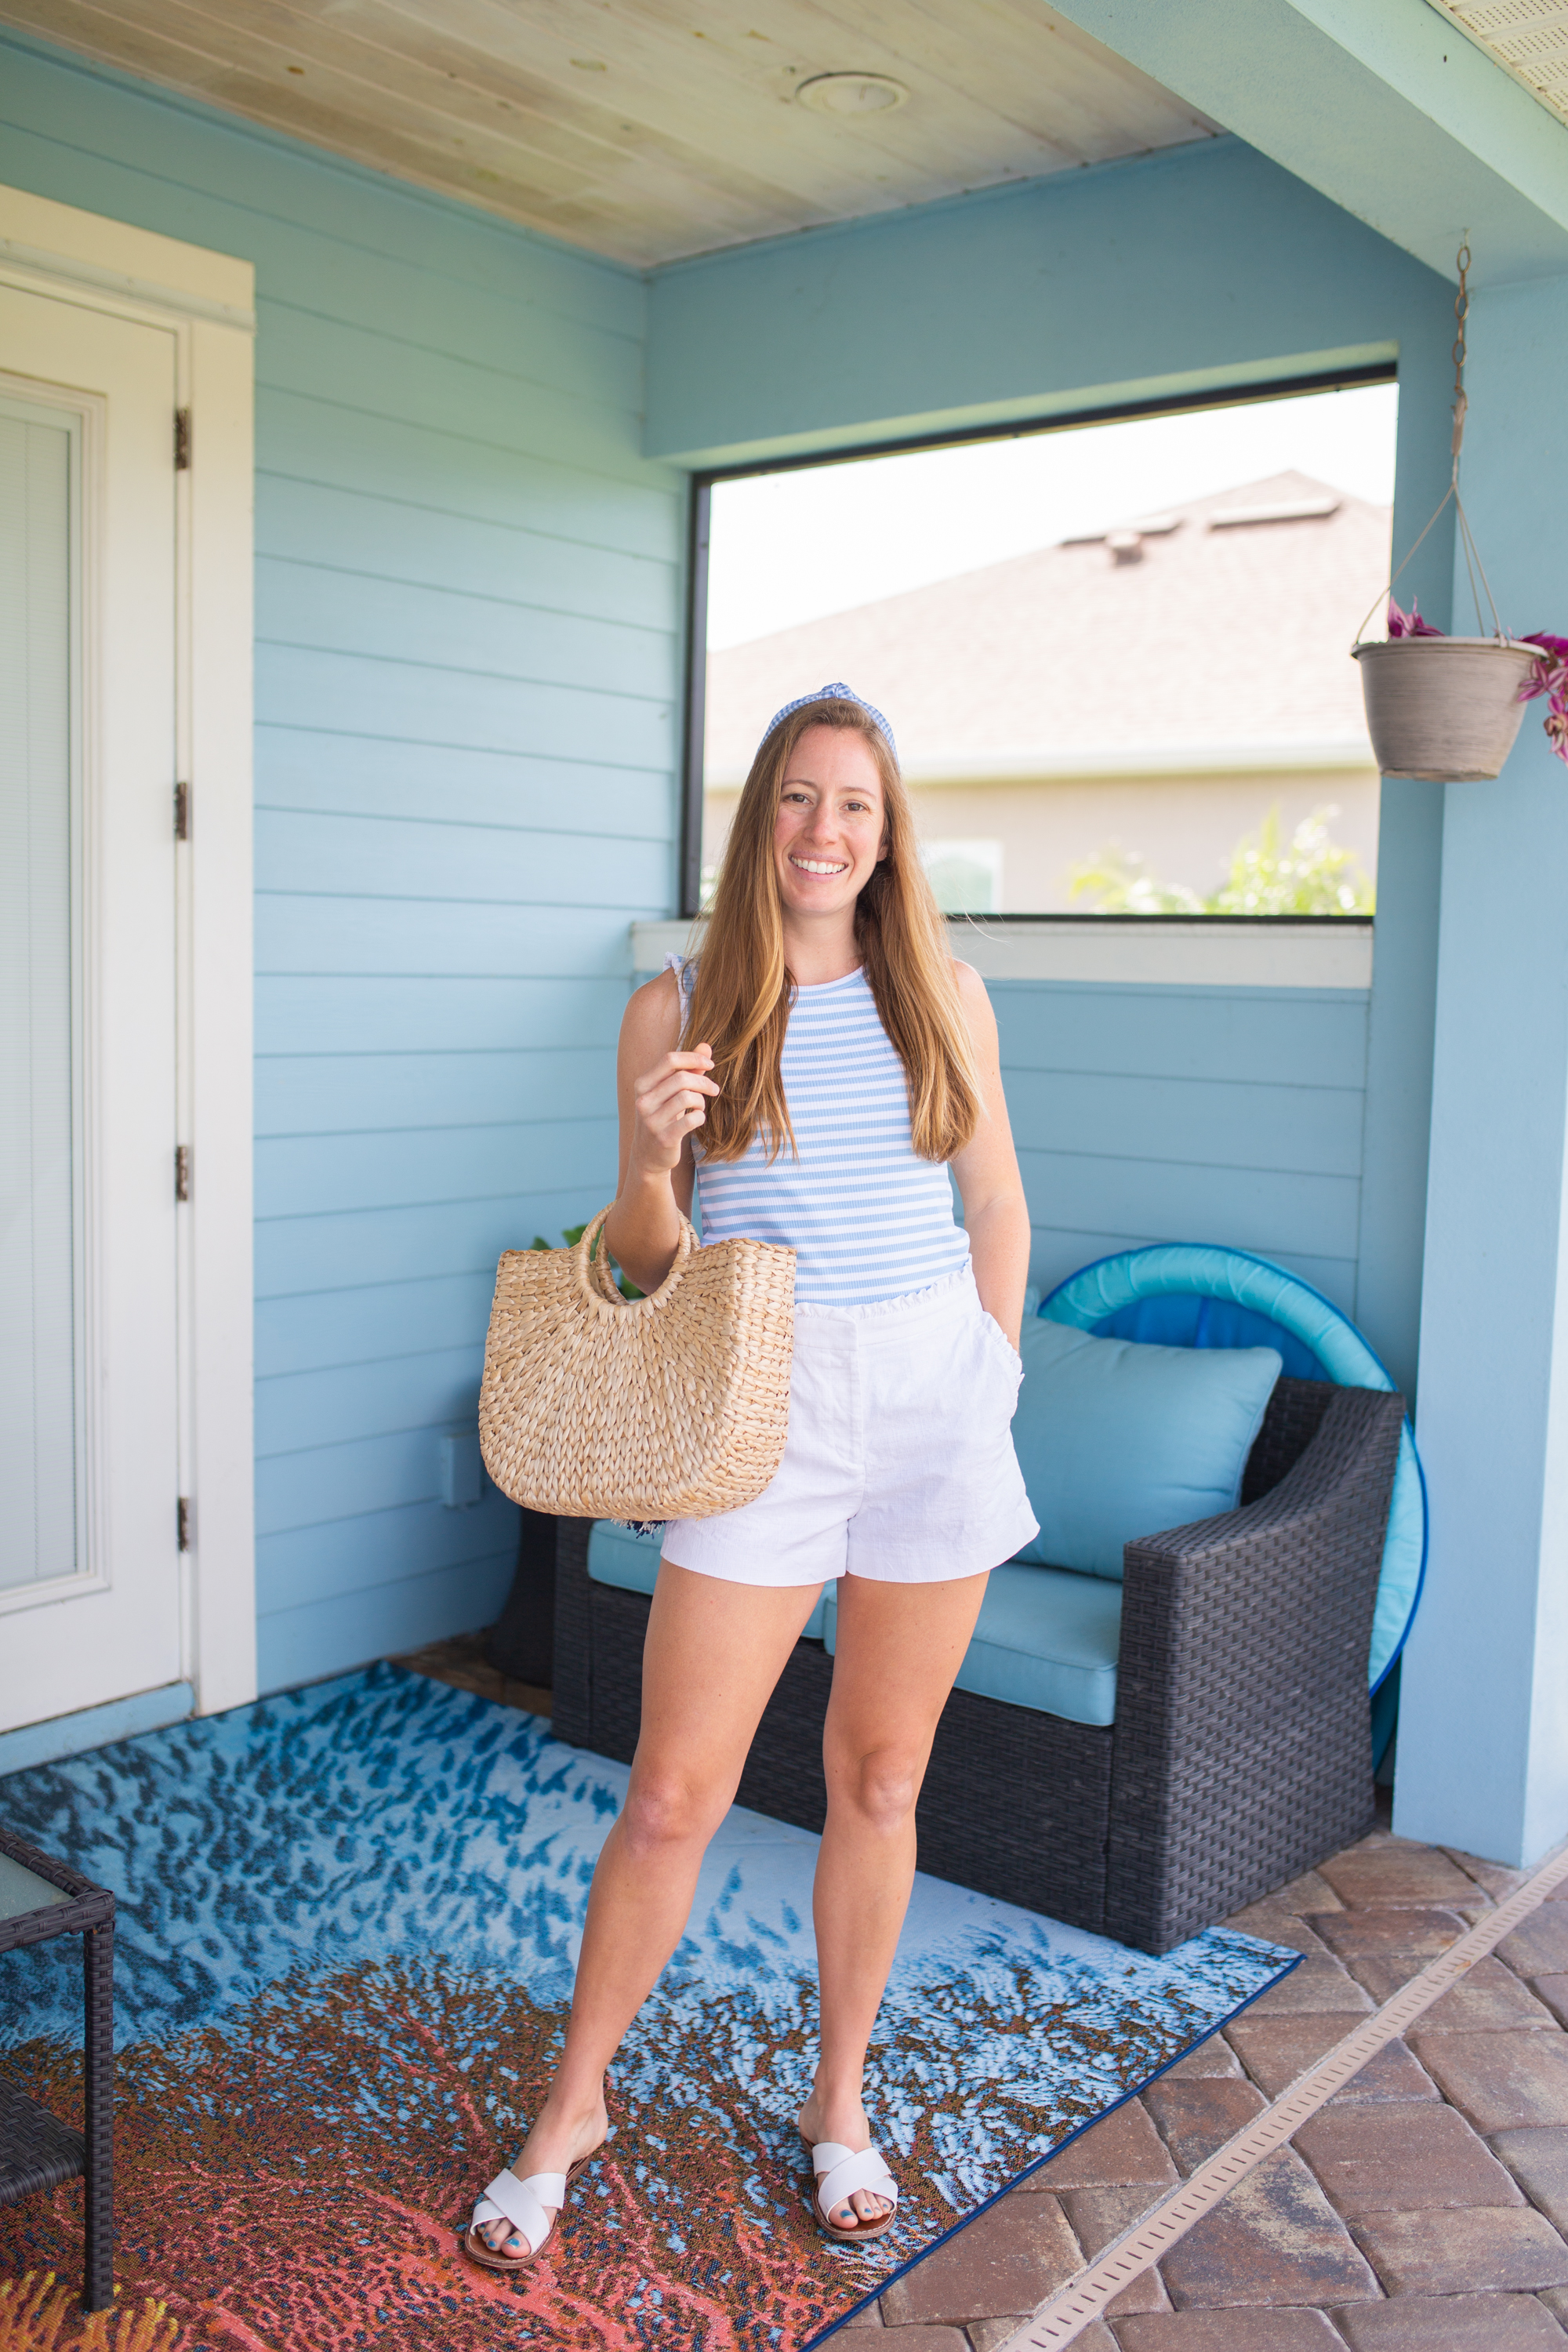 Blue & White Striped Tank & White Shorts paired with white sandals and sunshine style headband